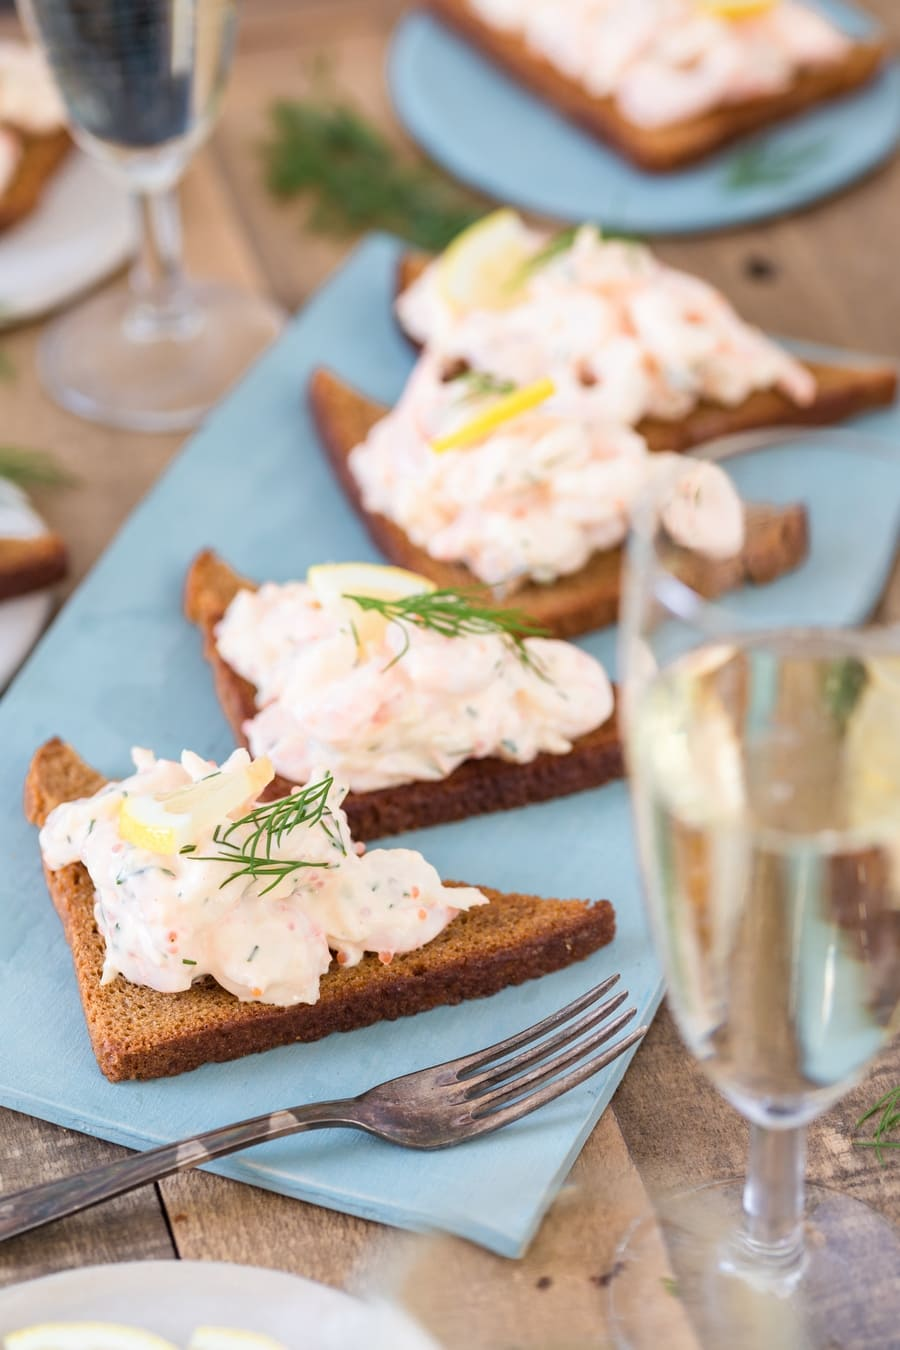 Swedish skagenröra shrimp salad on toasted rye bread, served with prosecco.